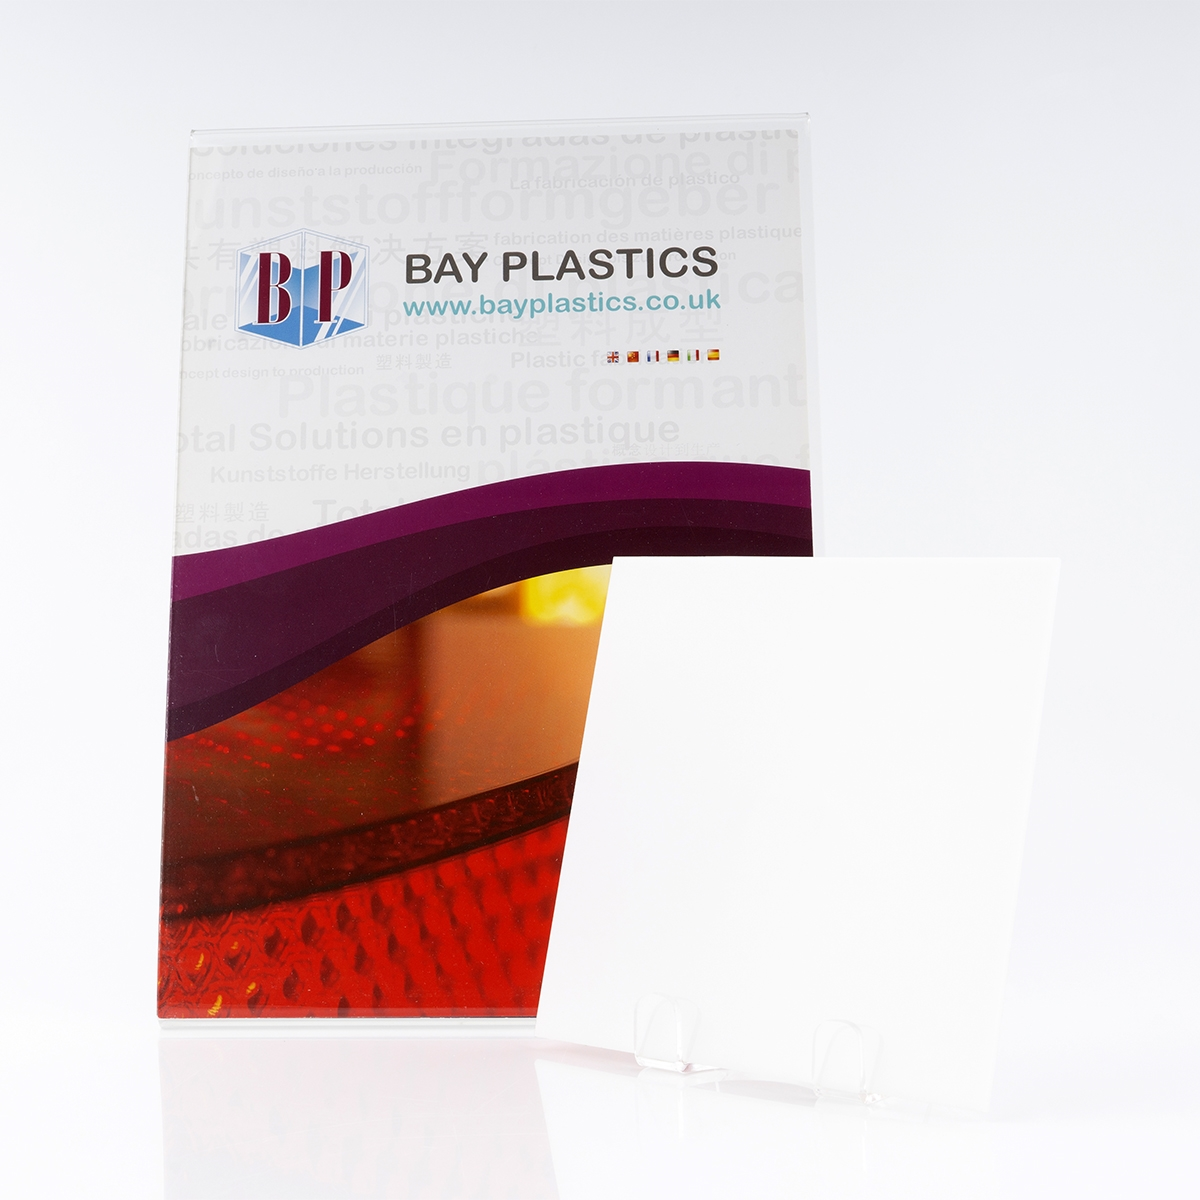 2mm Opal Polycarbonate Sheet with UV Protection on both sides for enhanced Weather Resistance with 39% Light Transmission